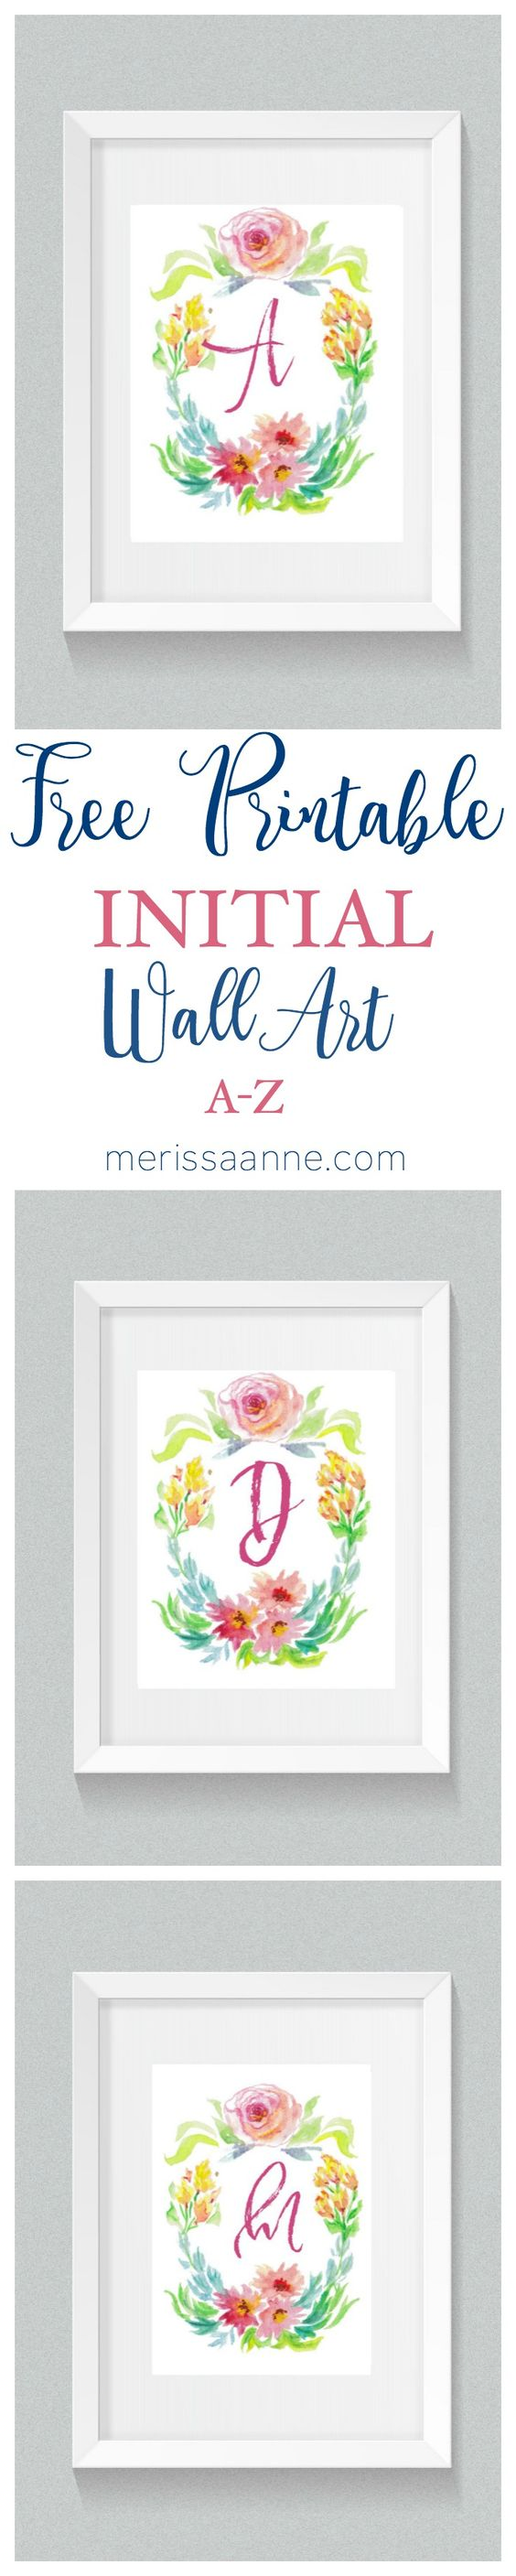 Gorgeous floral initials - free printables for your flower filled nursery or bedroom!